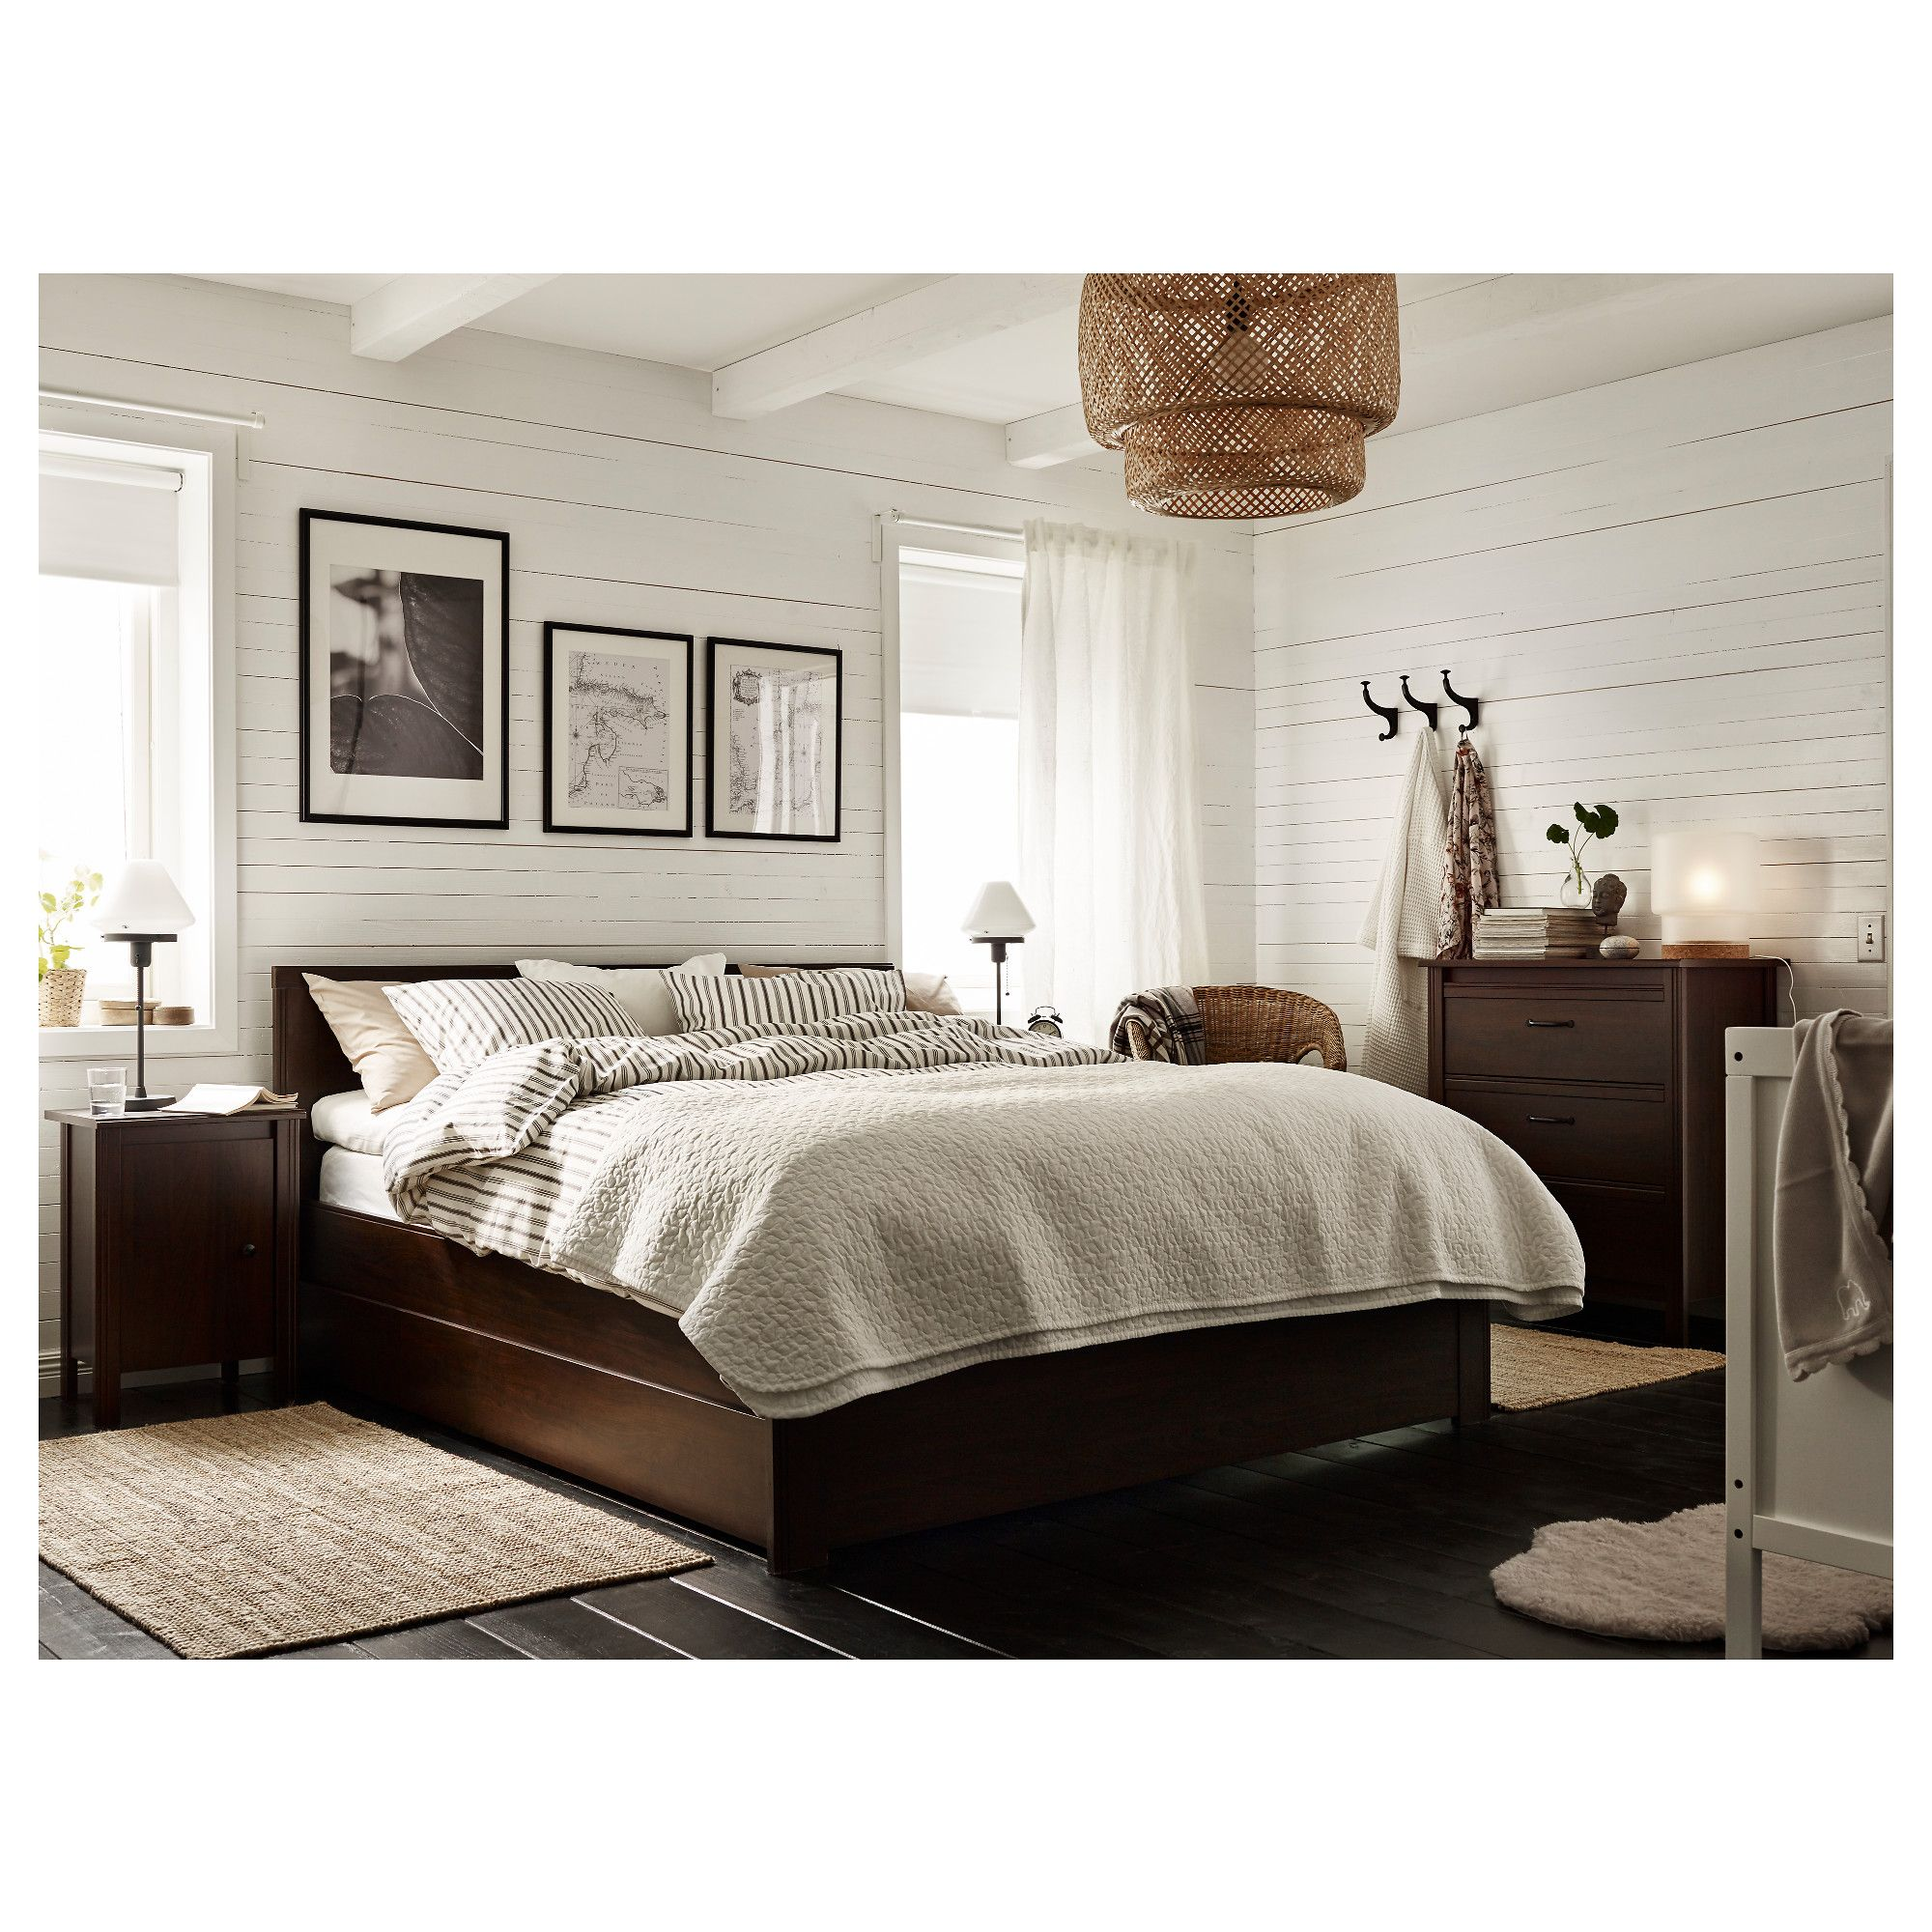 Us Furniture And Home Furnishings Ikea Bedroom Sets Ikea